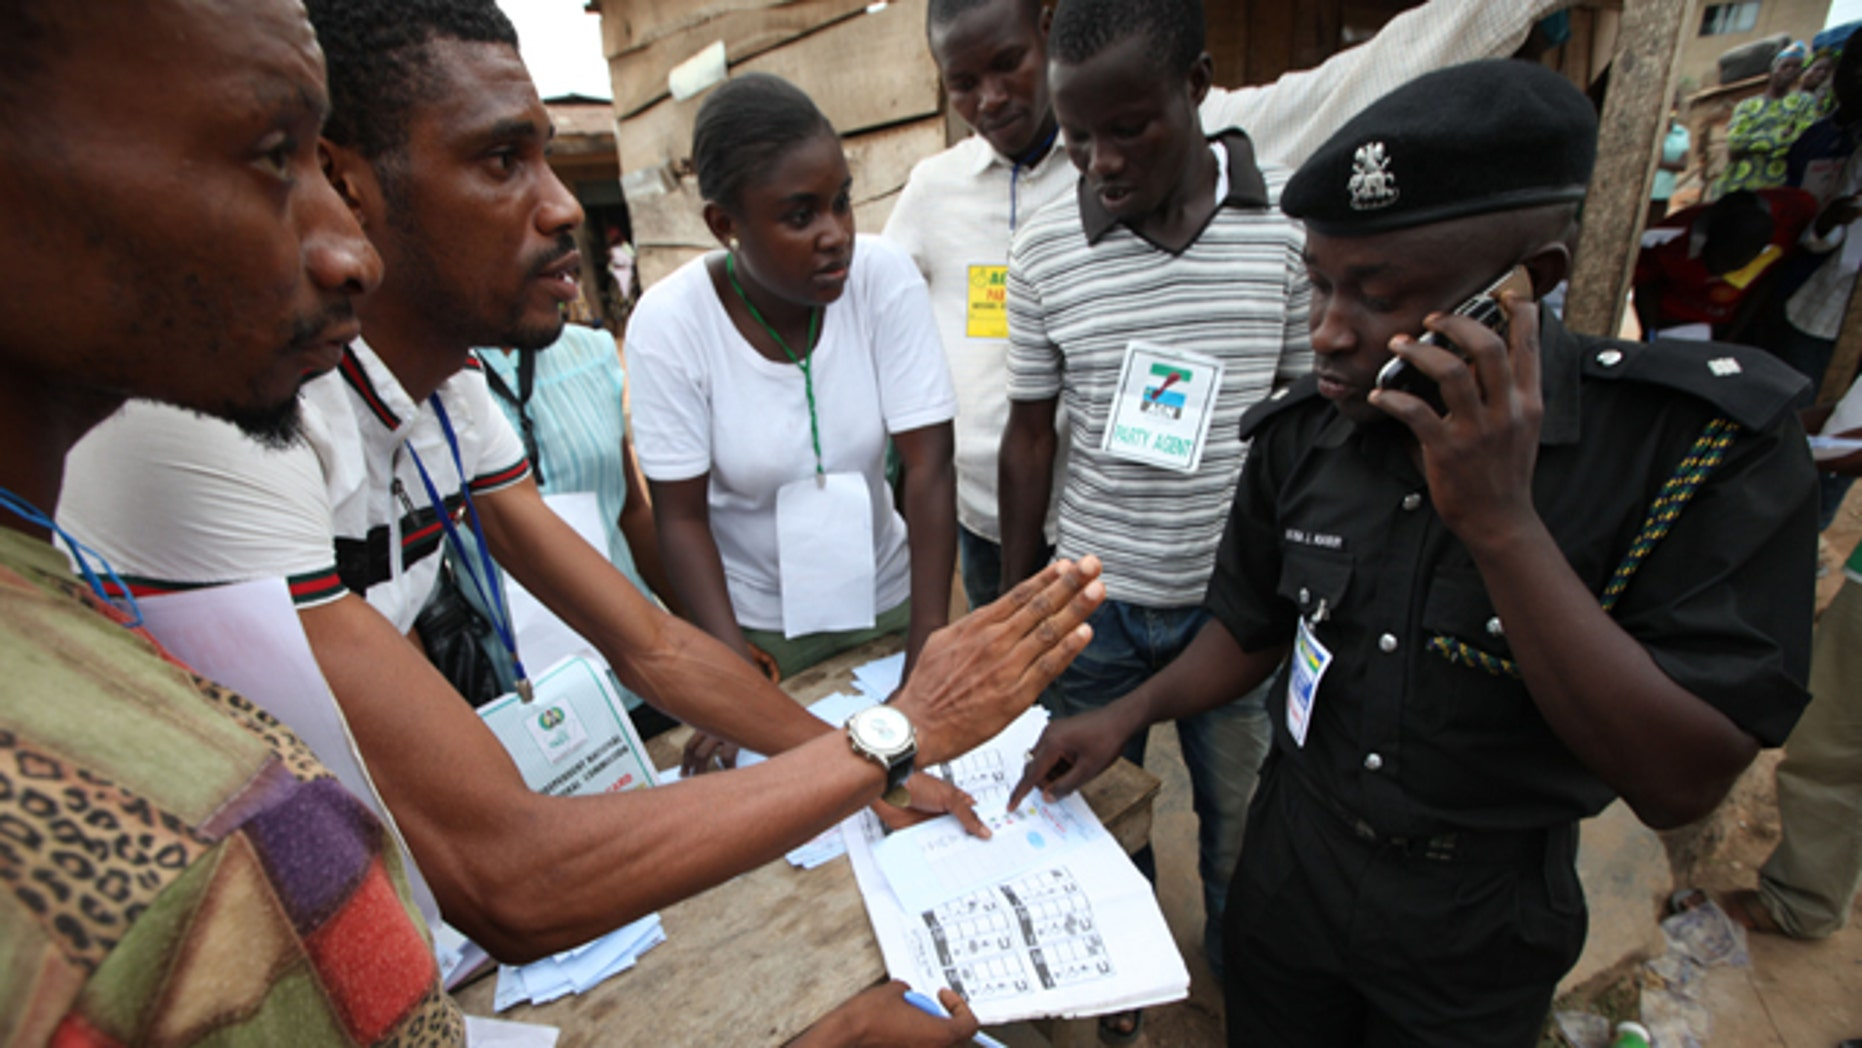 A Police officer, right, checks election results from electoral officers after the National Assembly election in Ibadan, Nigeria,Saturday, April 9, 2011. Nigeria's voters put their inked fingers to ballots Saturday for the first round in the nation's crucial April election, coming out to vote despite bomb attacks and communal violence. Poll workers shoved themselves into rickety commercial buses, cars and other vehicles to travel to the roughly 120,000 polling stations spread throughout Africa's most populous nation. Voting for the nation's estimated 73.5 million voters largely began at noon across the country. (AP Photo/Sunday Alamba)